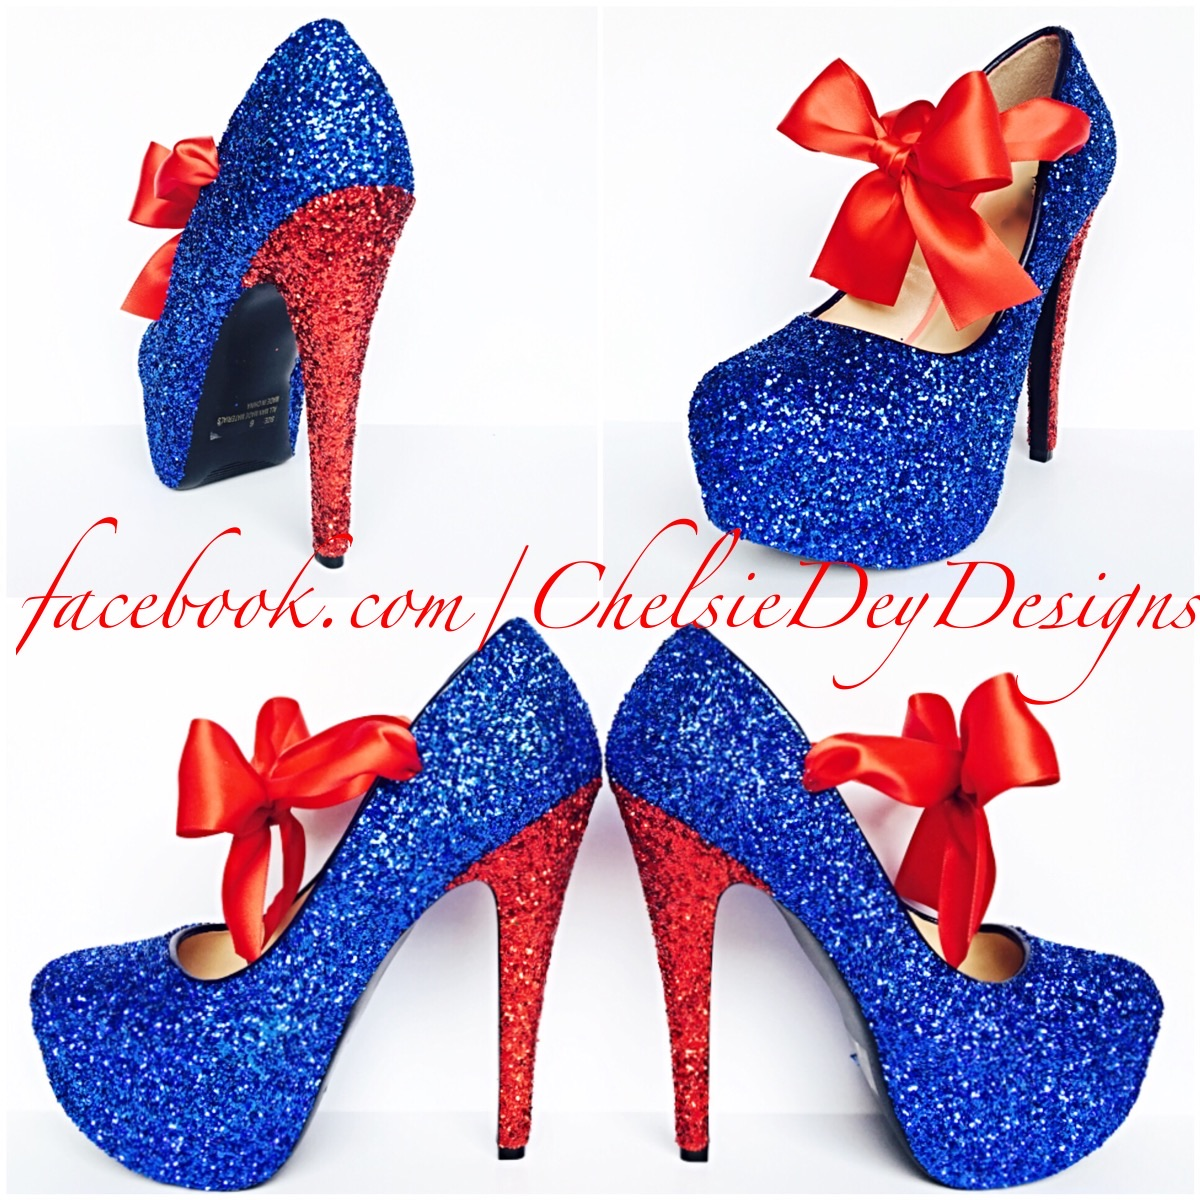 Glitter High Heels Royal Blue And Red Pumps Sparkly